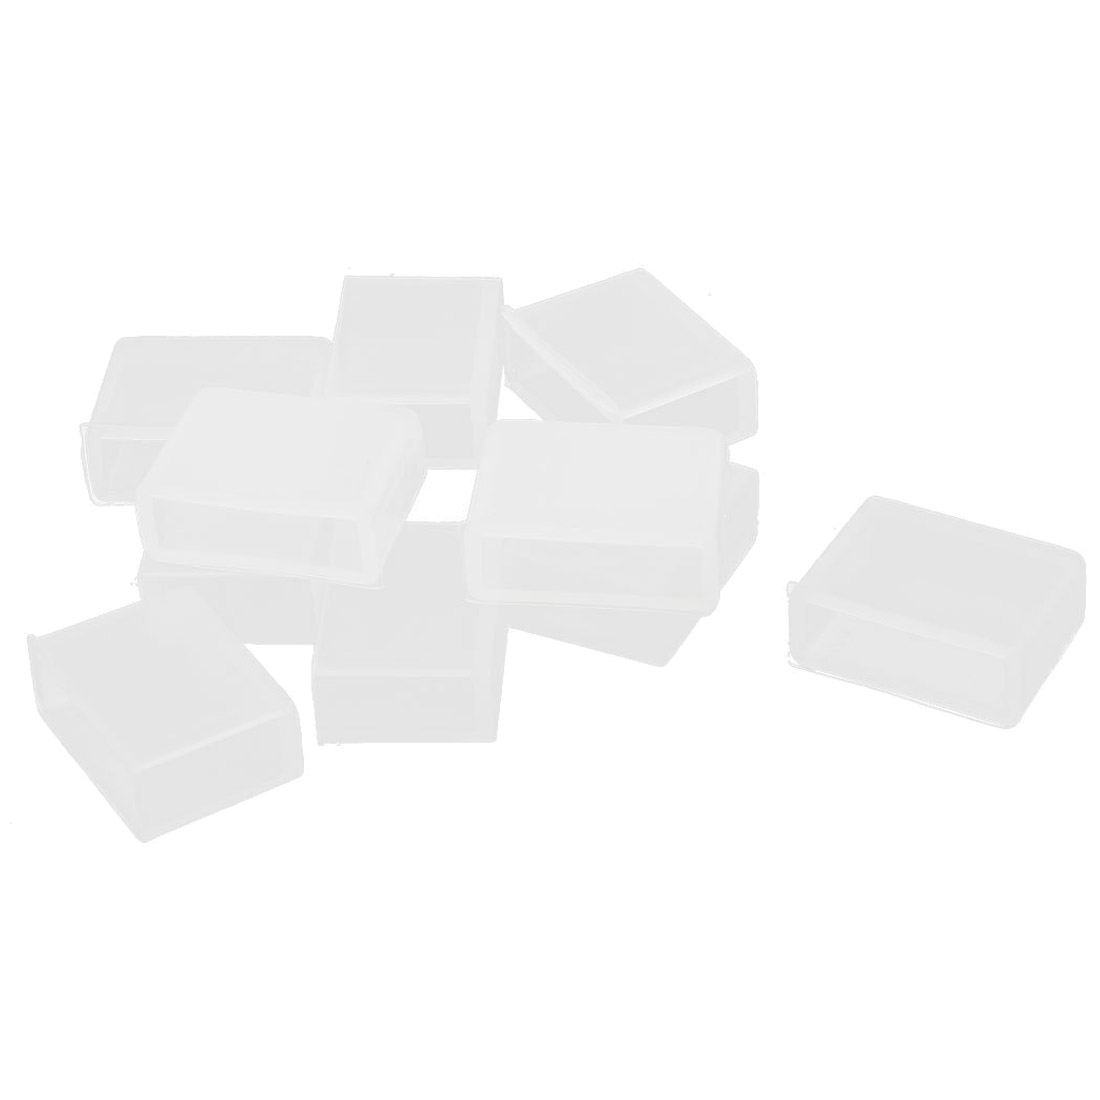 10 pcs 12mm Silicone End Cap Cover for 5050 2811 IP67 IP68 12V LED Tube cd магнитола sony zs pe60